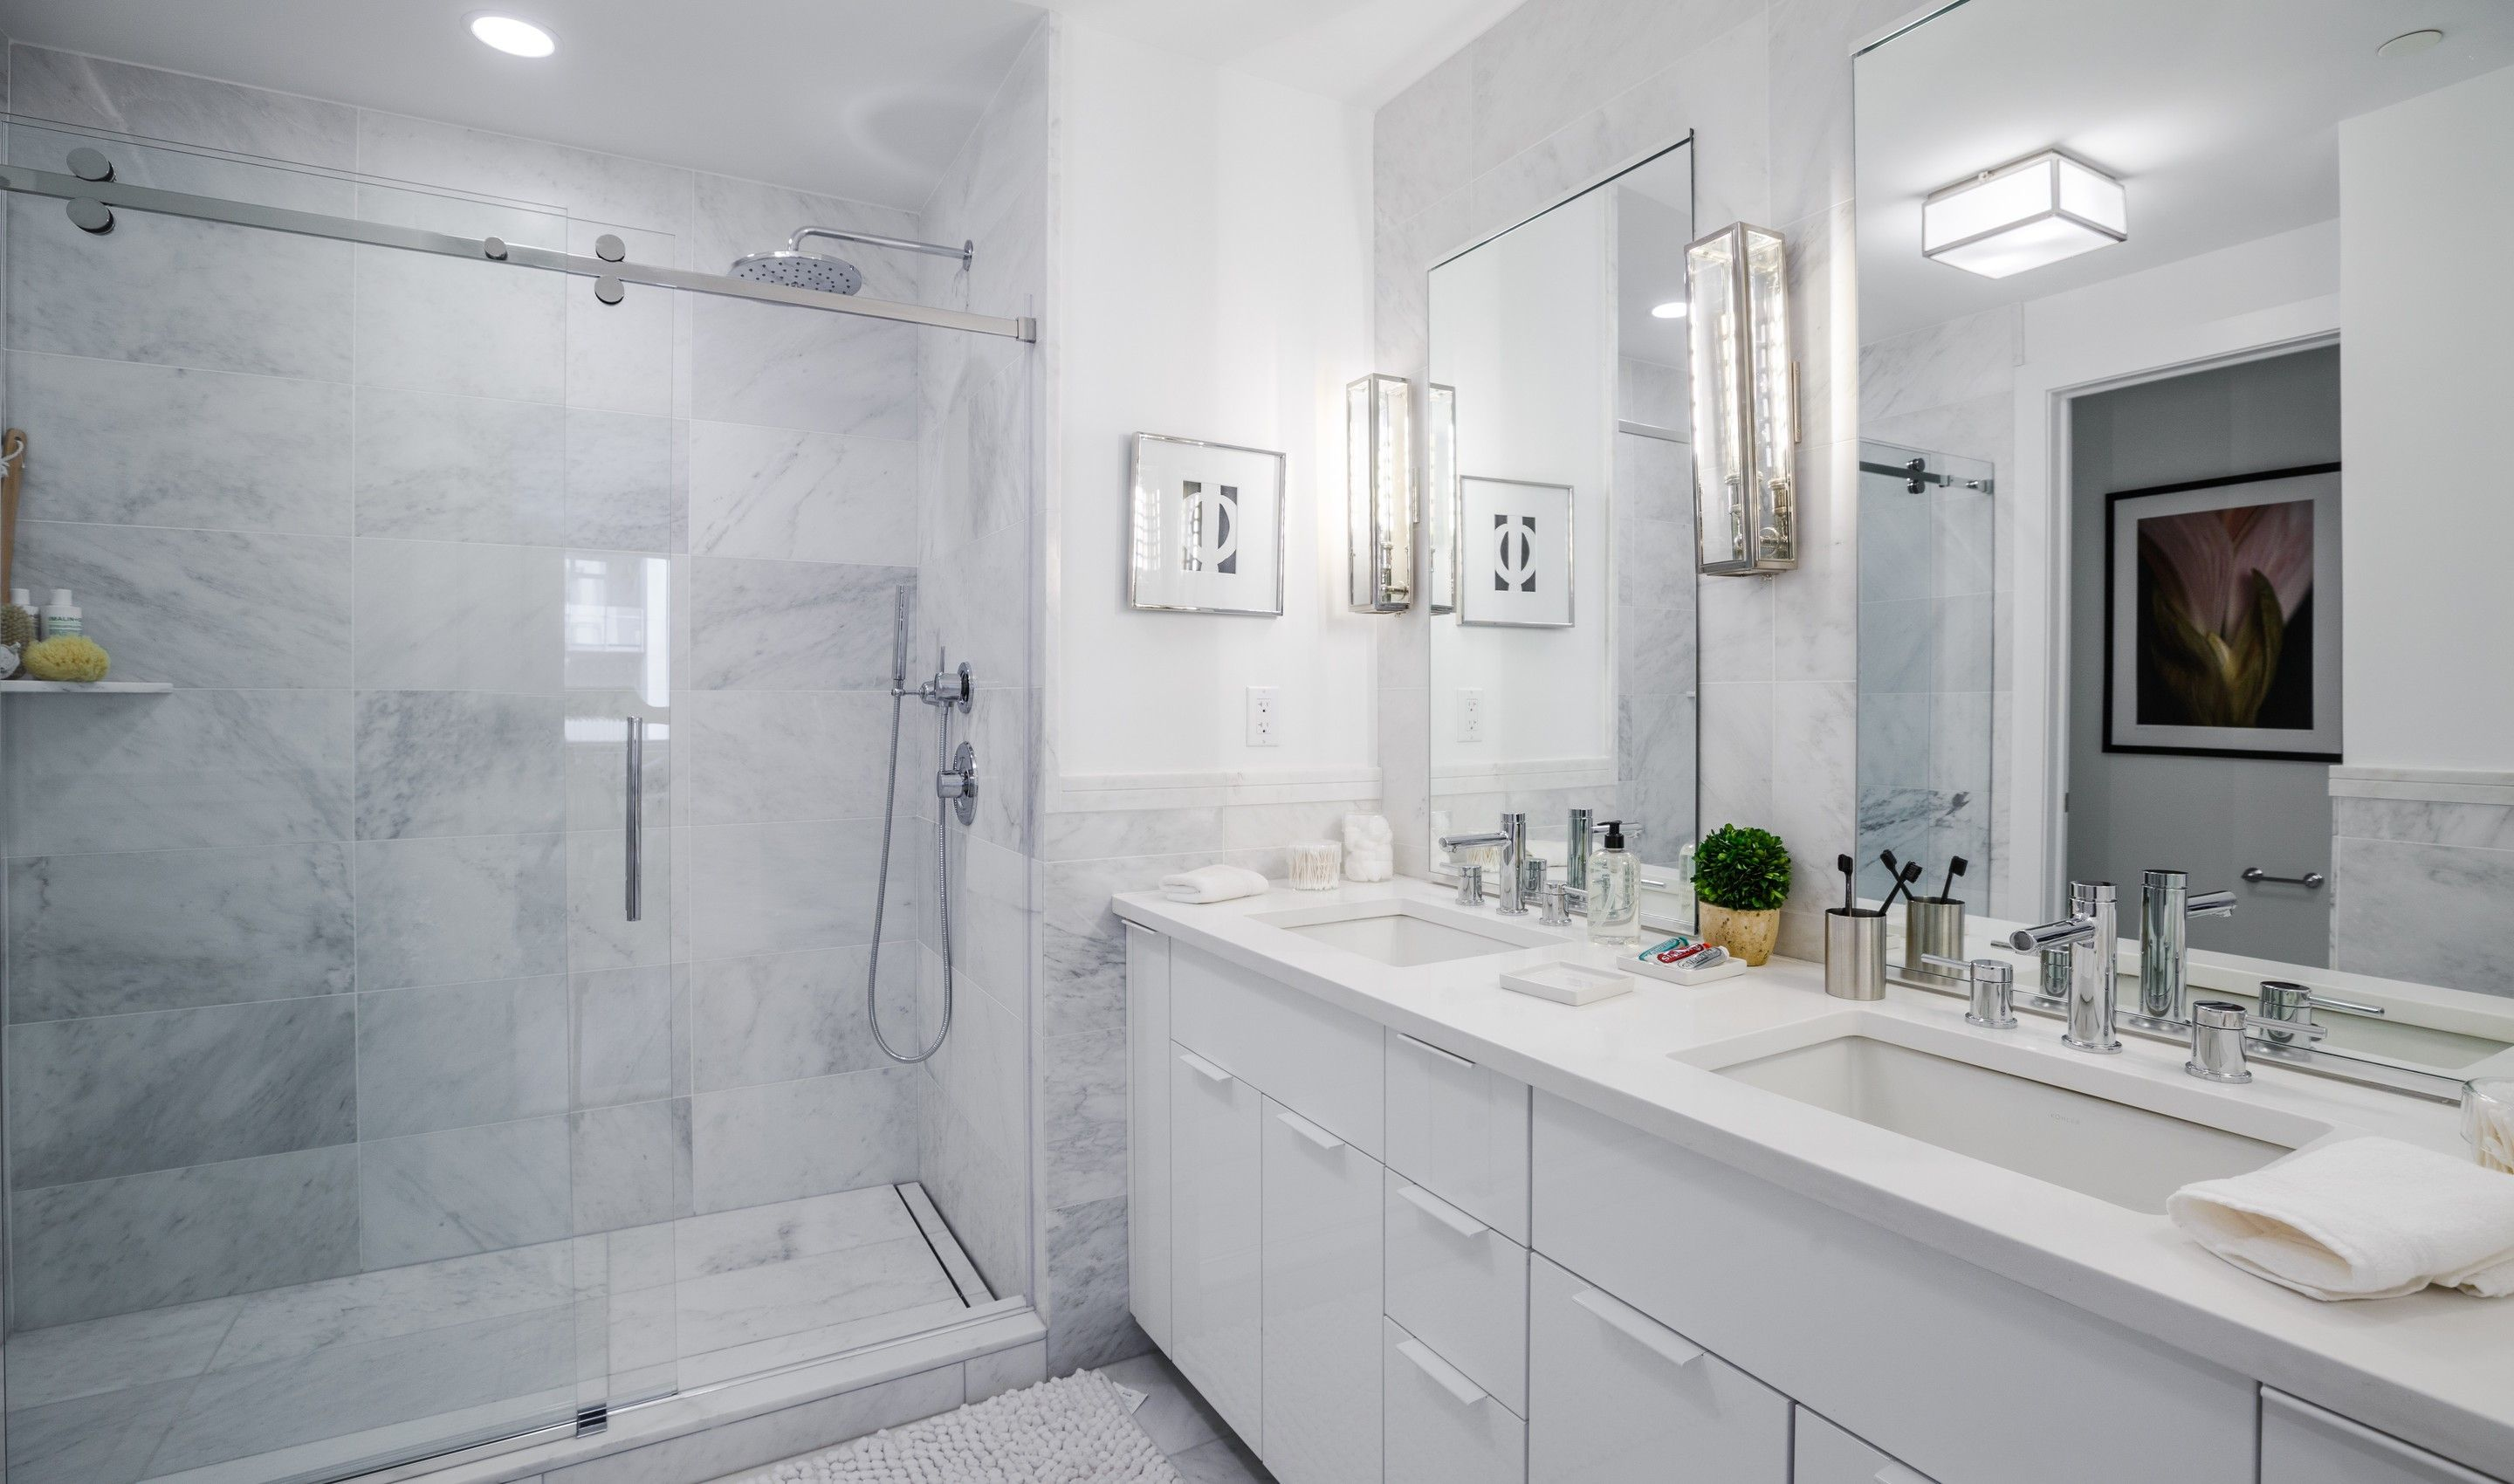 Bathroom featured in the B1 By K. Hovnanian® Homes in Hudson County, NJ